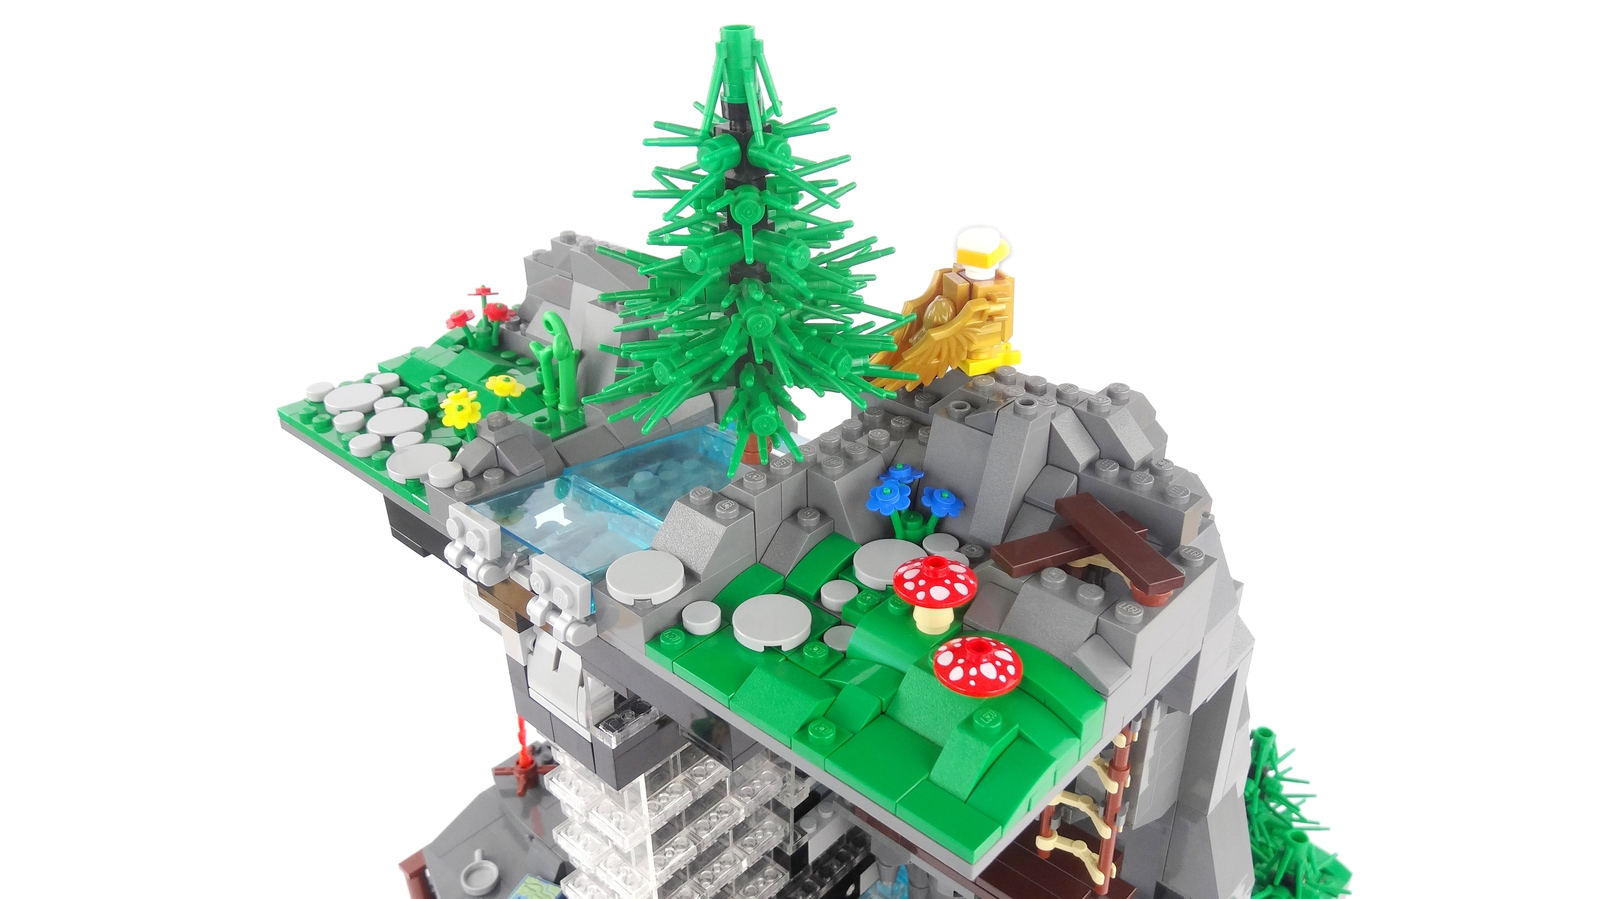 lego-ideas-working-waterfall-with-continuous-flowing-water-legoparadise-5 zusammengebaut.com